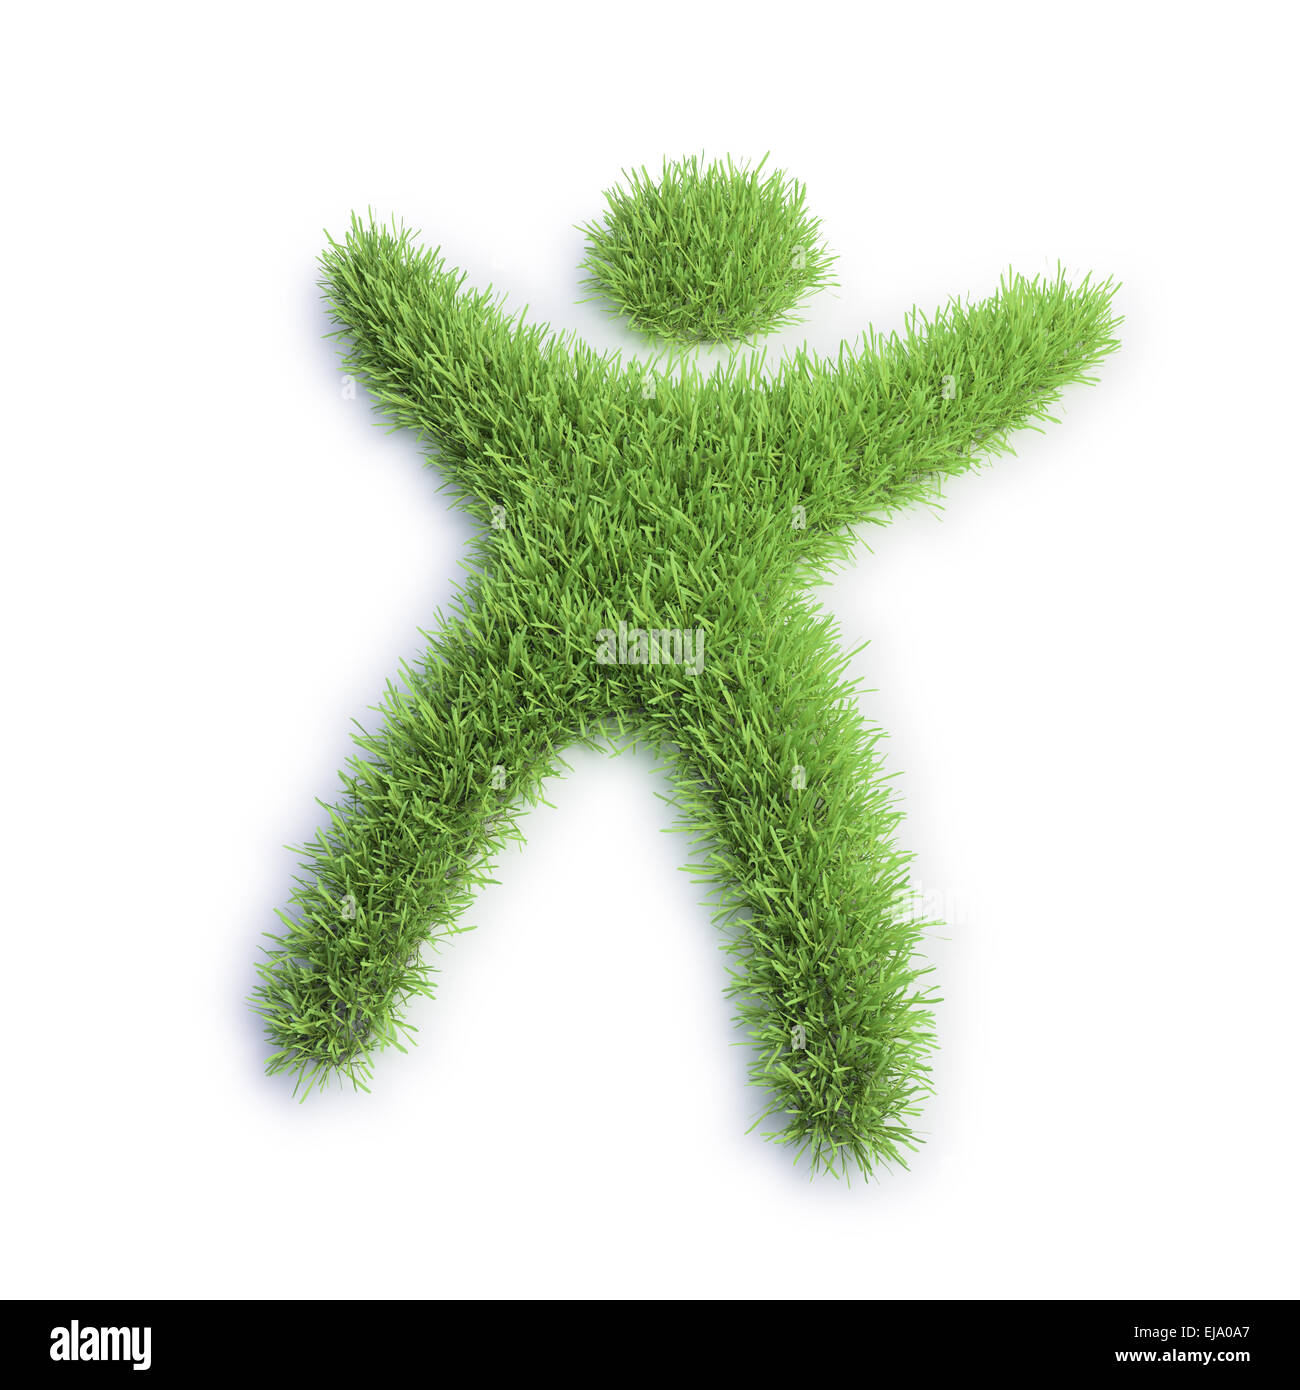 Green eco icon - grass patch shaped like a tiny human - Stock Image